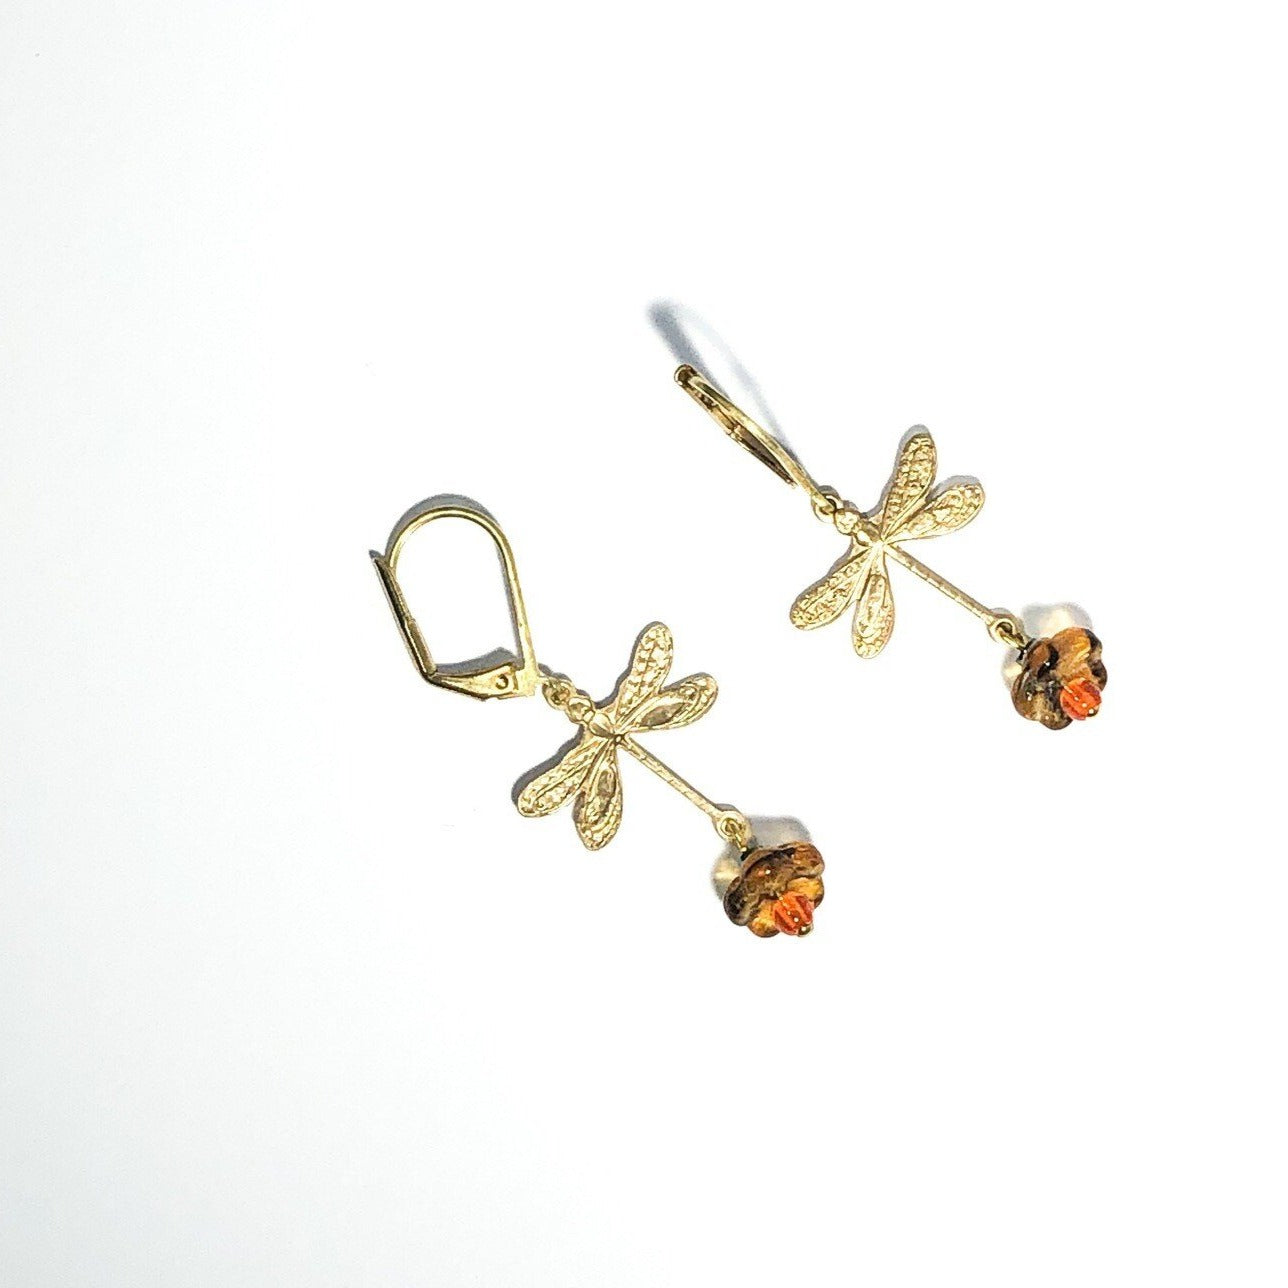 brass dragonfly earhangers with tangerine colored stone